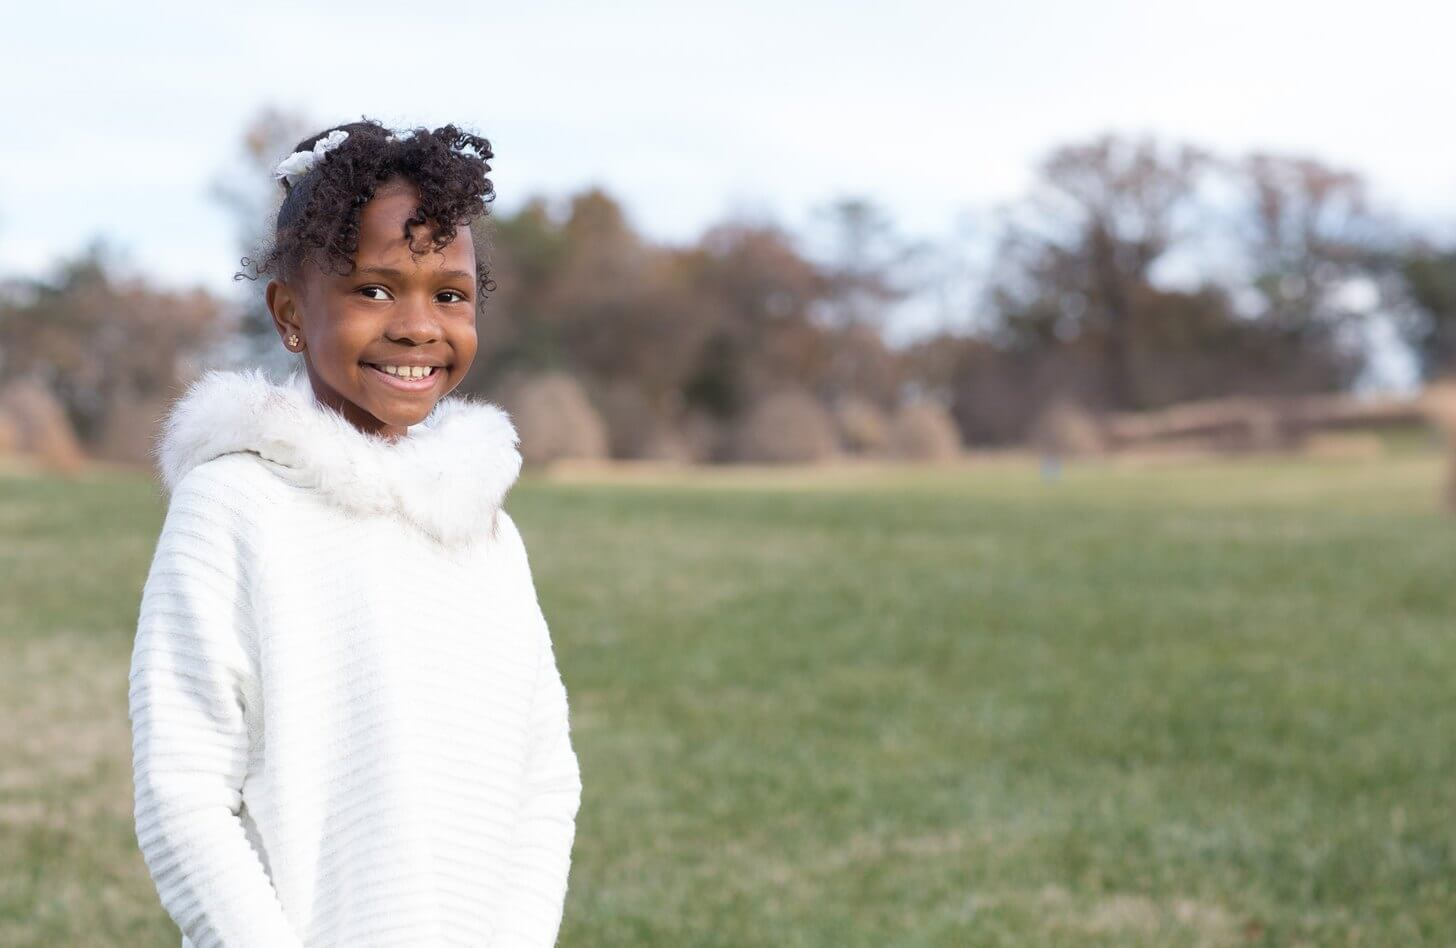 Kaylin received a lifesaving liver transplant at 18 months. Today, she enjoys school, basketball, and playing with her siblings.